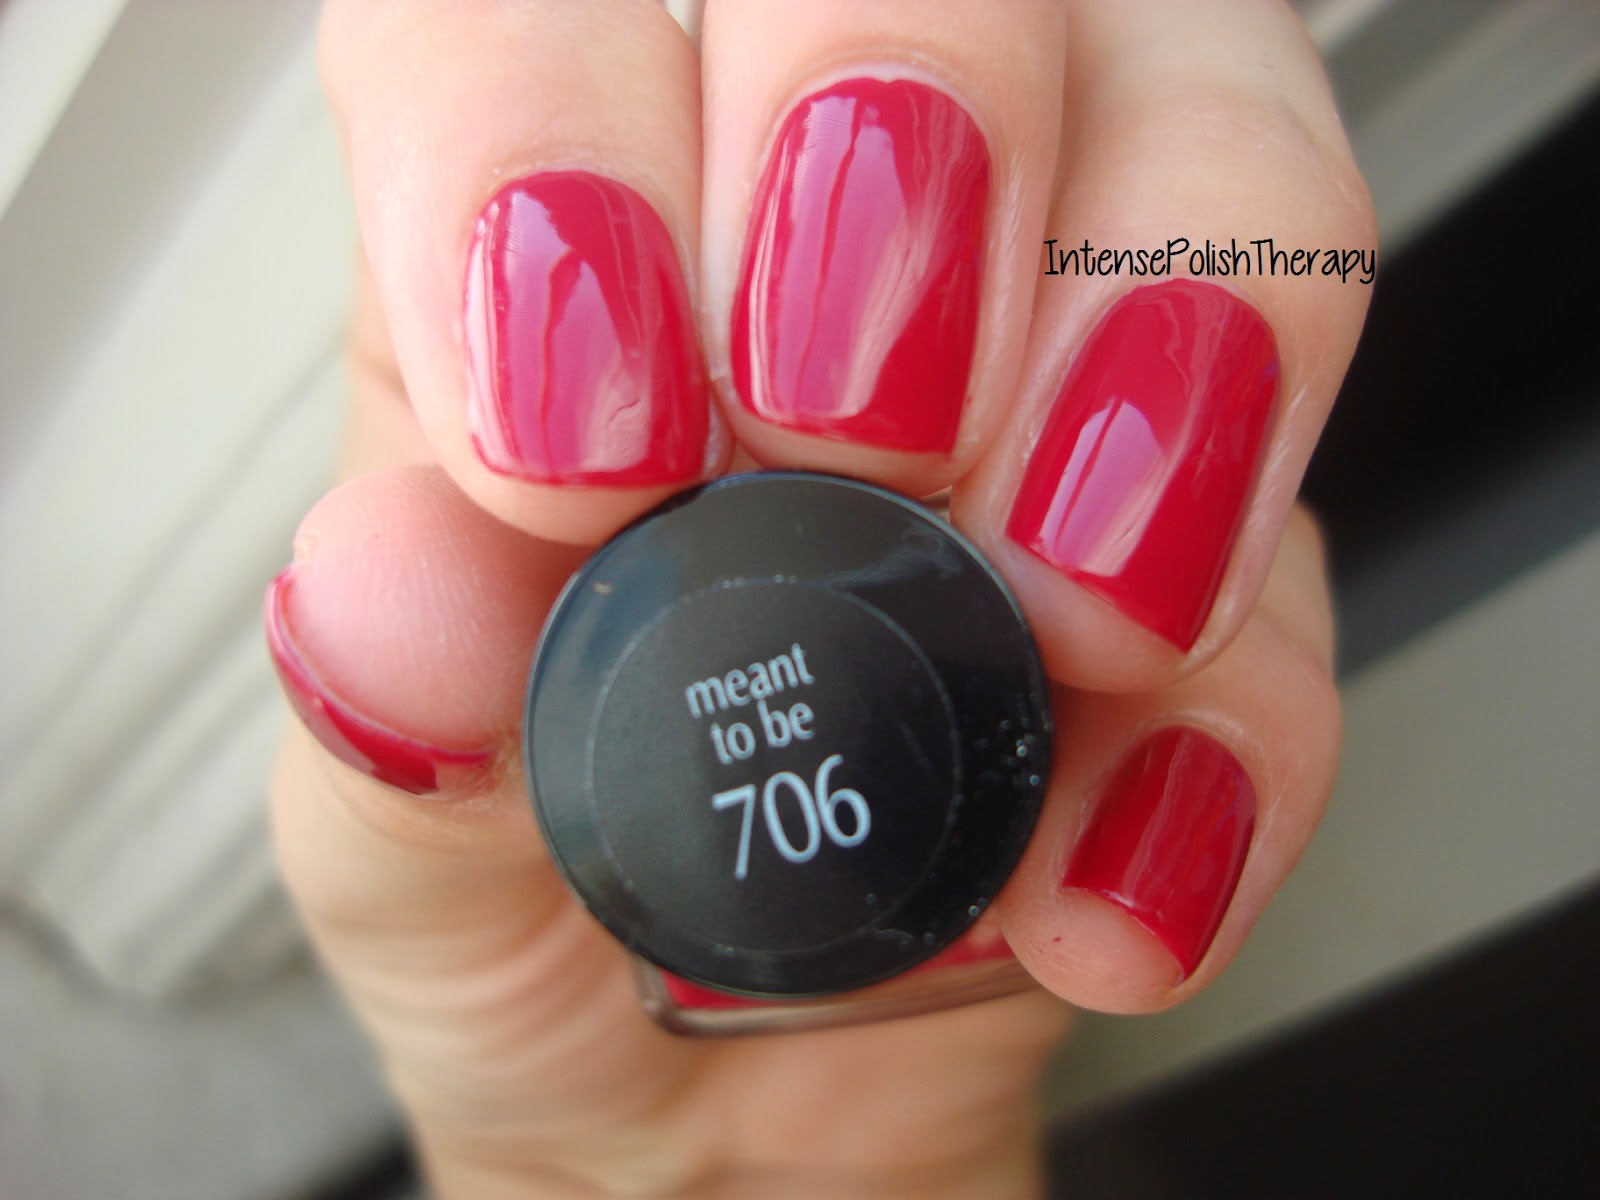 L'Oreal  Extraordinaire Gel Lacquer - 706 Meant To Be